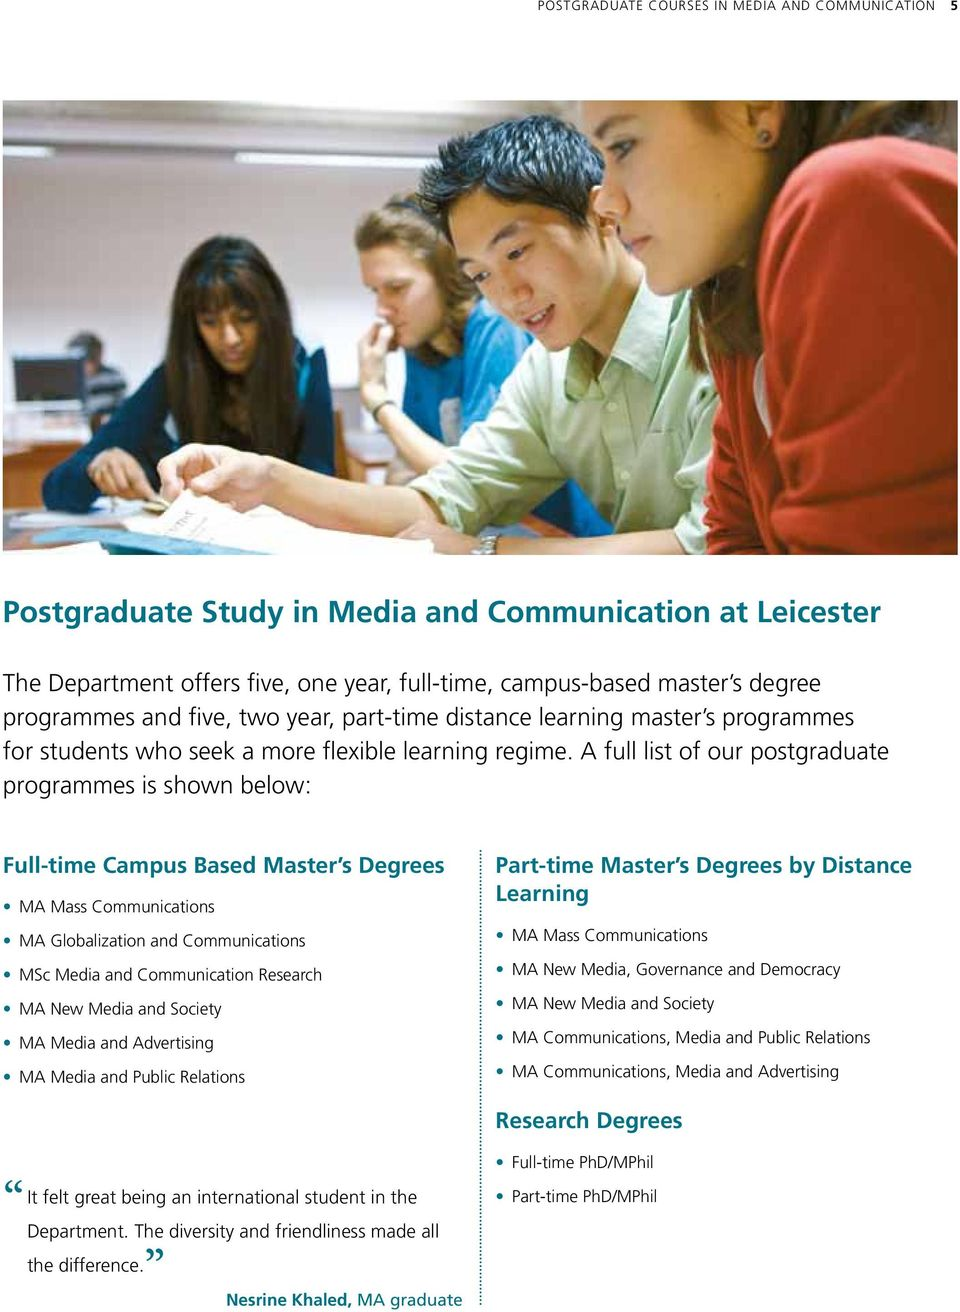 A full list of our postgraduate programmes is shown below: Full-time Campus Based Master s Degrees MA Mass Communications MA Globalization and Communications MSc Media and Communication Research MA